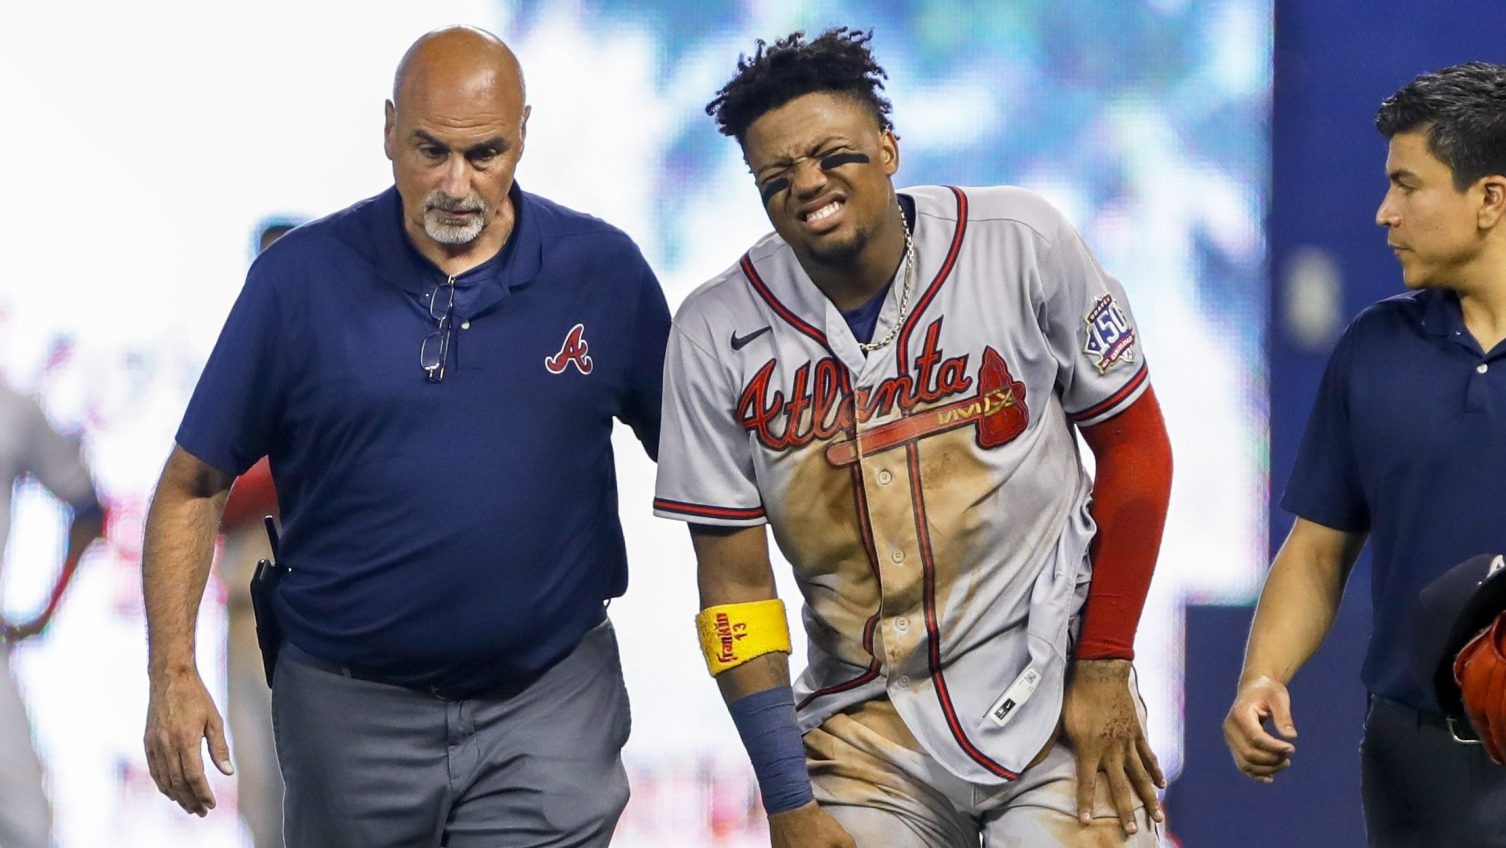 Braves' Acuña Jr. carted off with apparent right leg injury